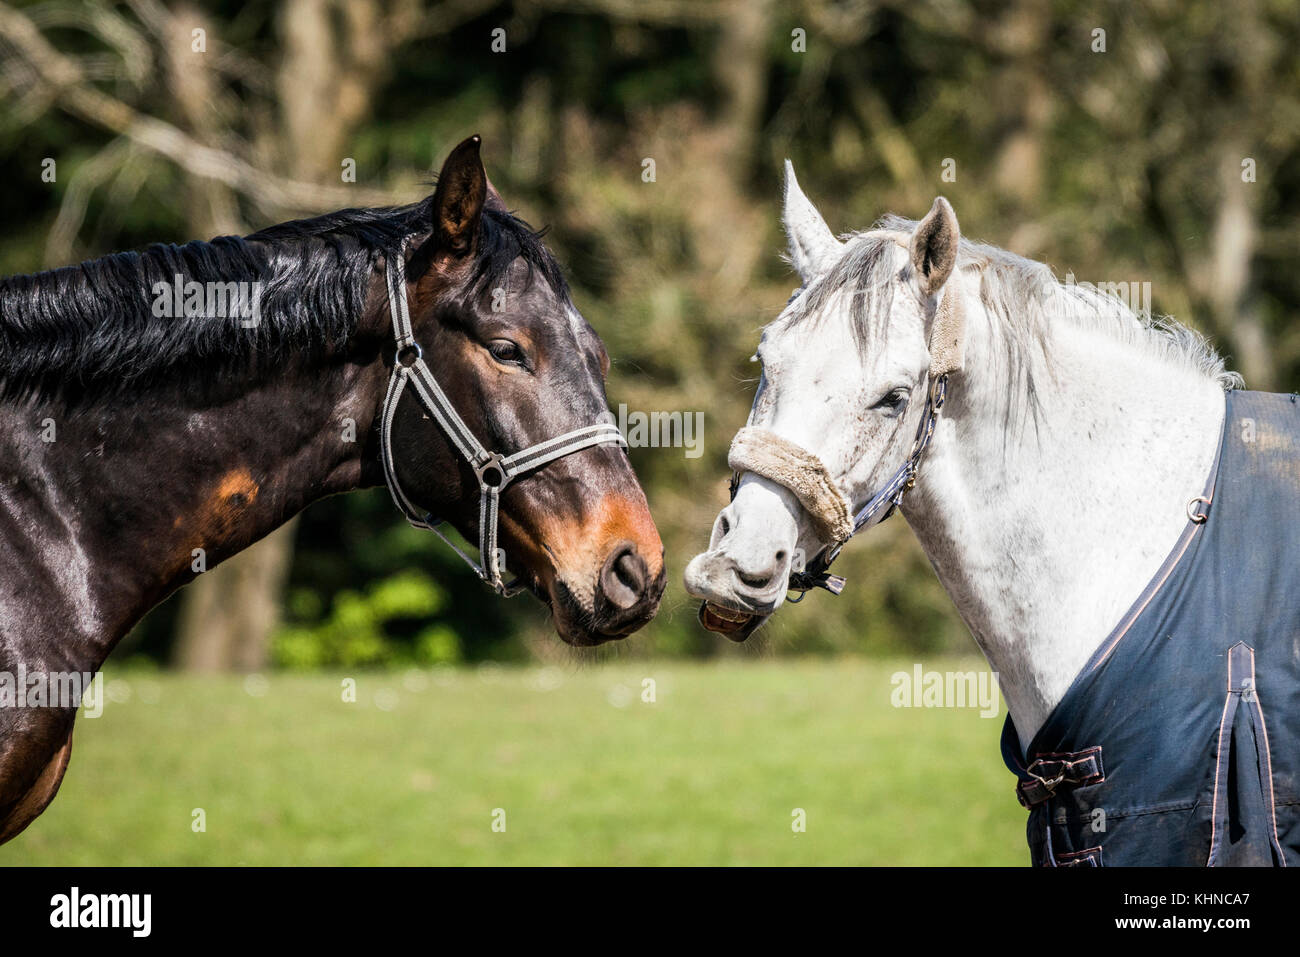 Brown and white horses standing close head to head on a green countryside field - Stock Image